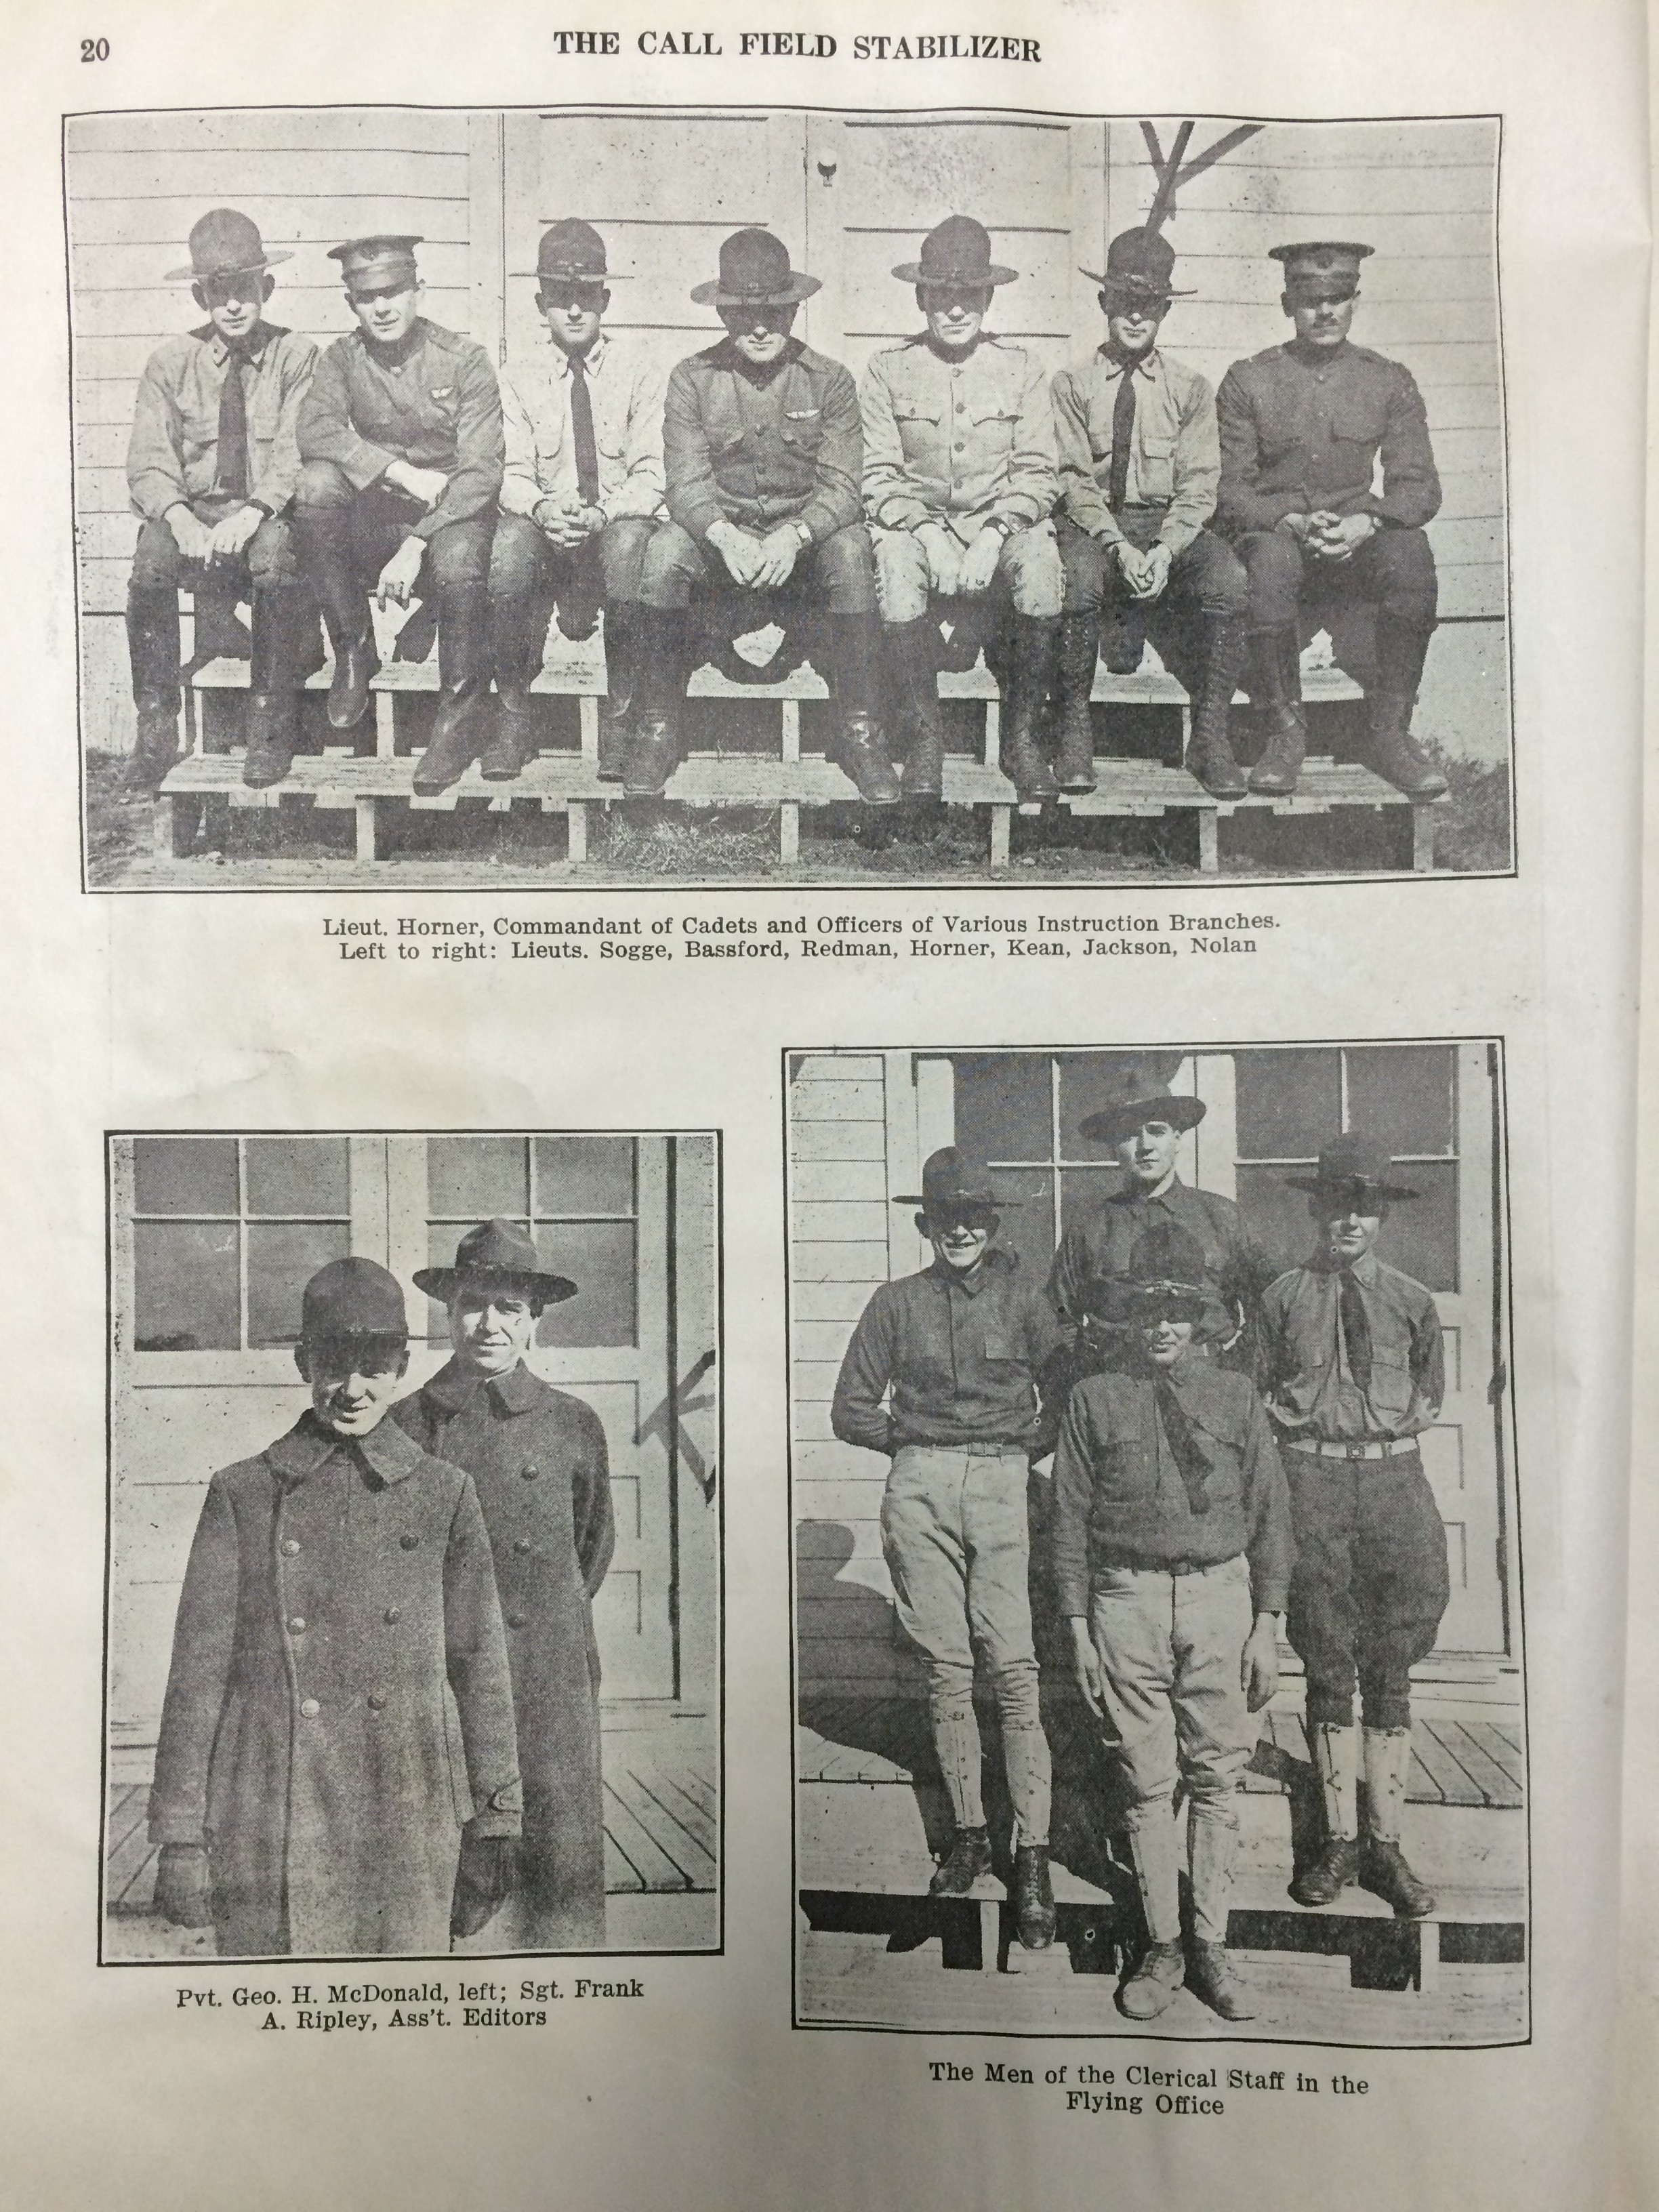 Image 20 December 15, 1918 Call Field Stabilizer